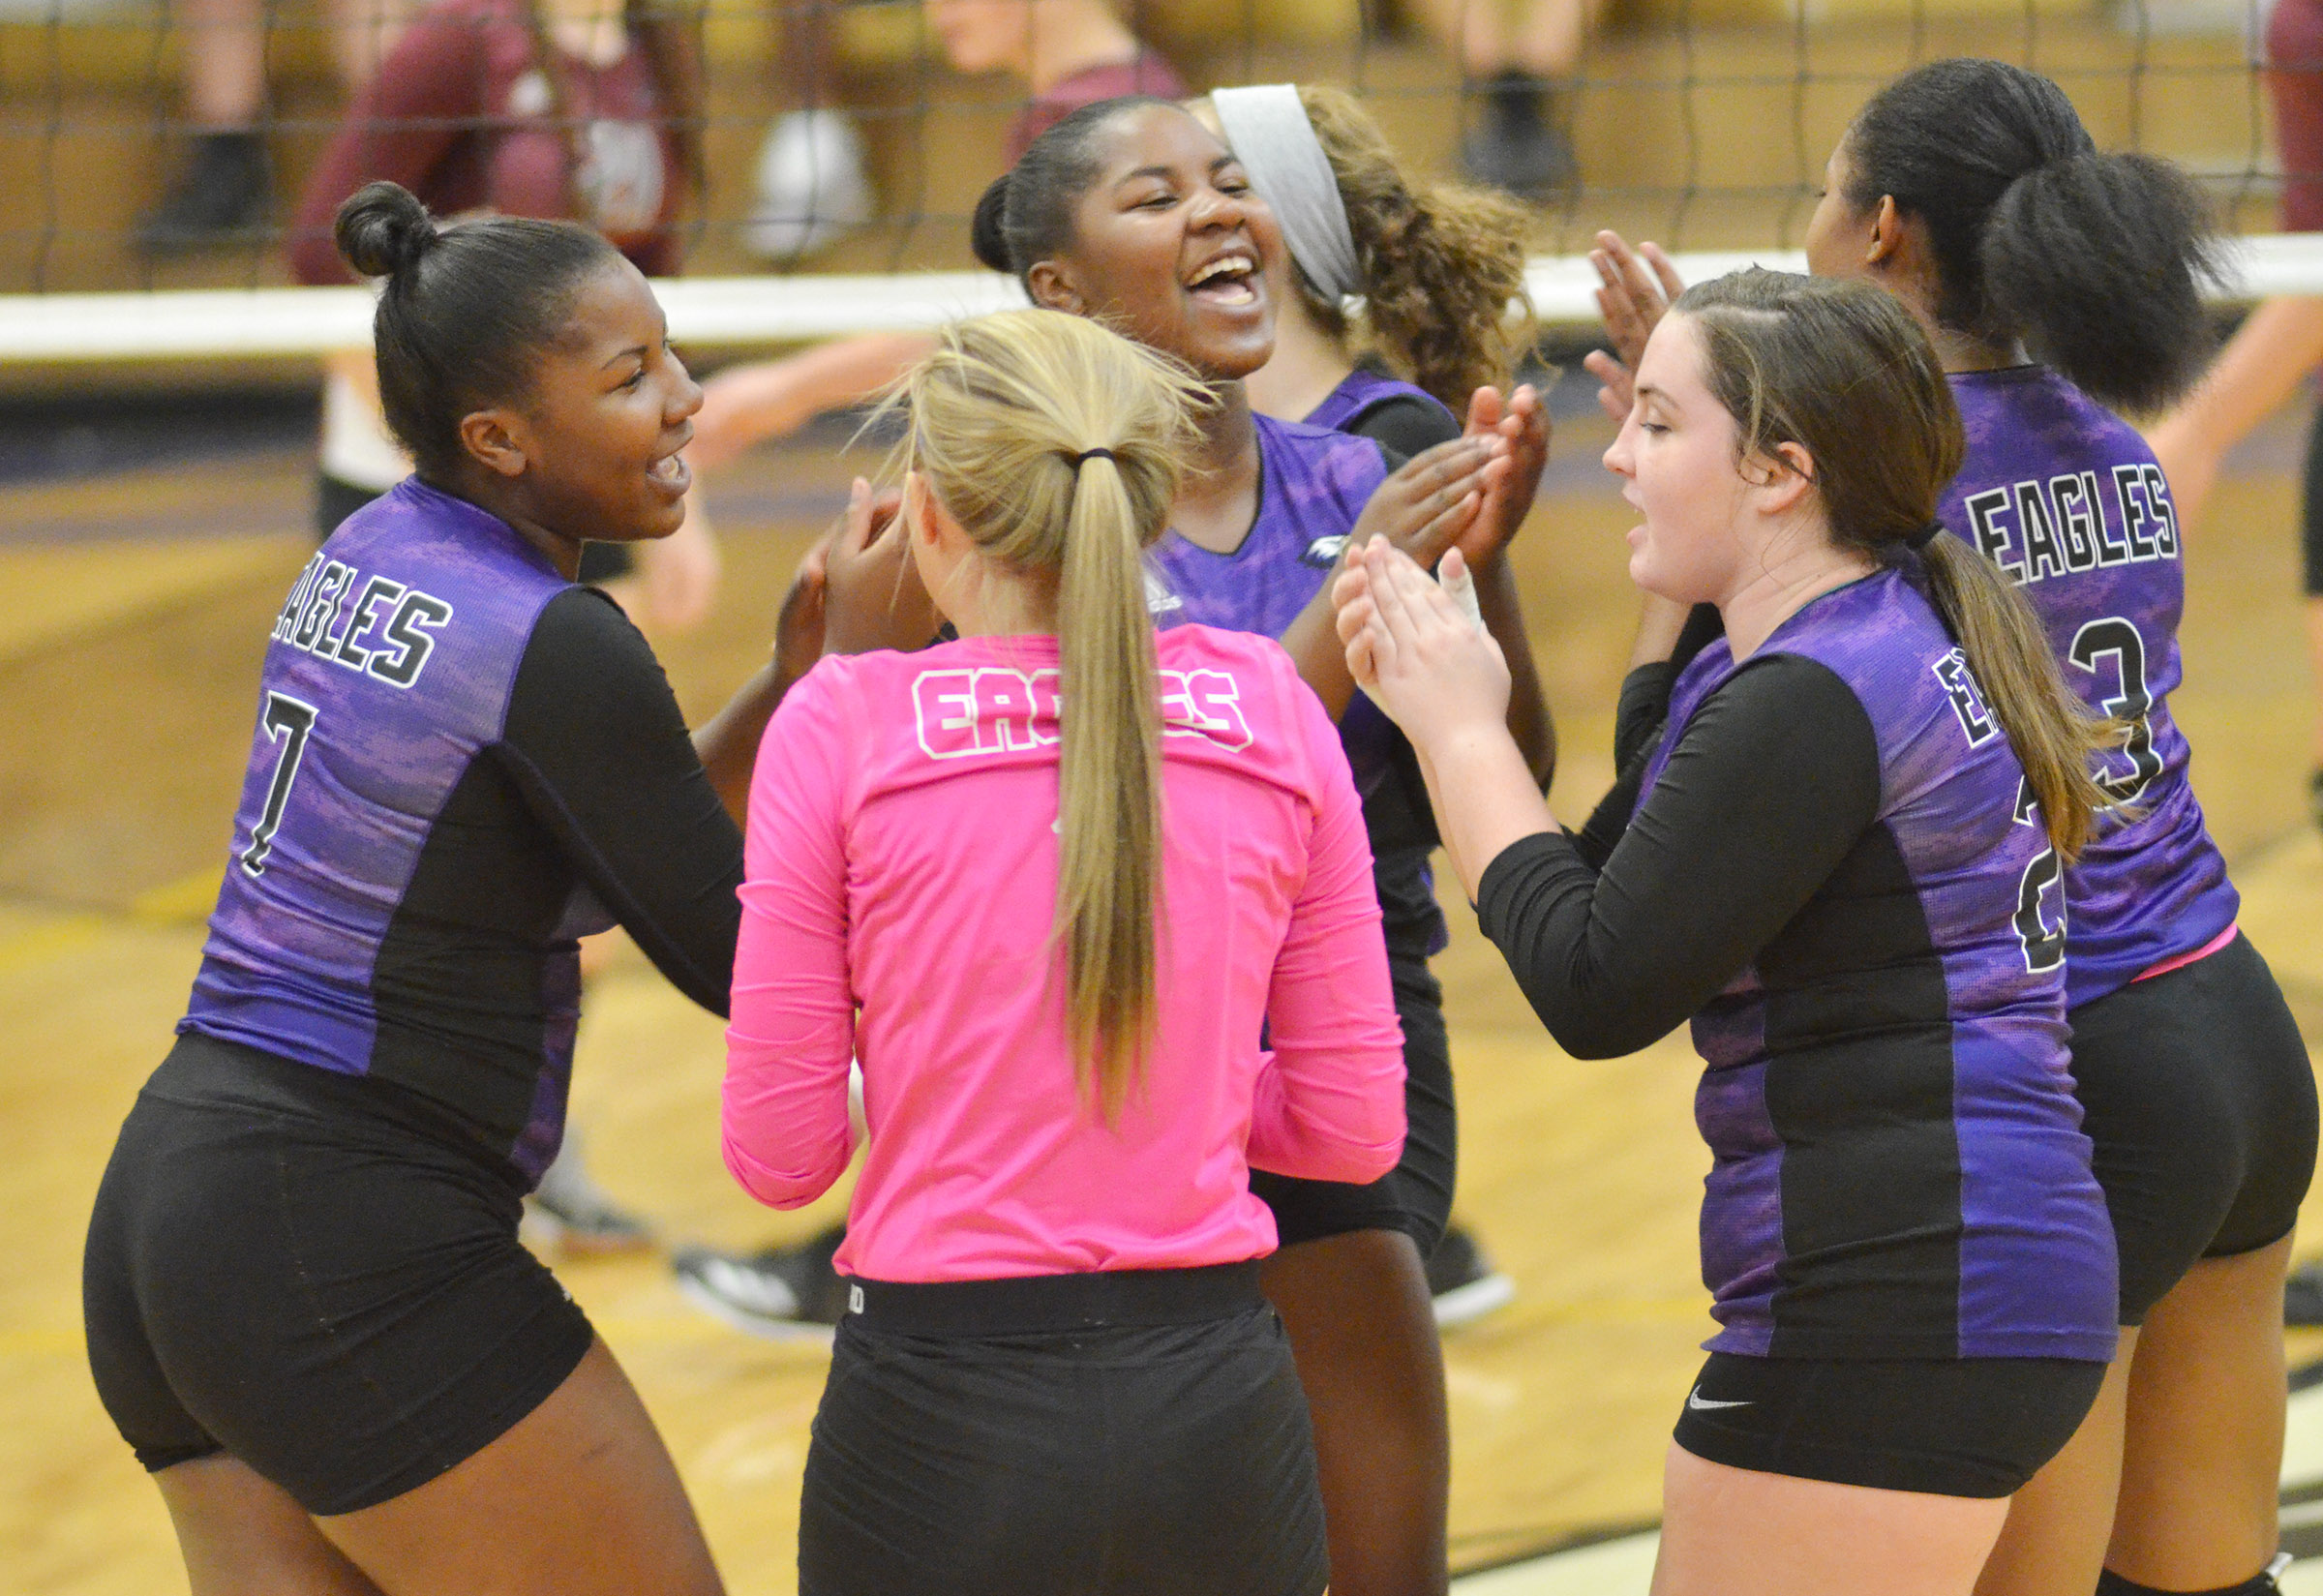 CHS volleyball players celebrate a point.